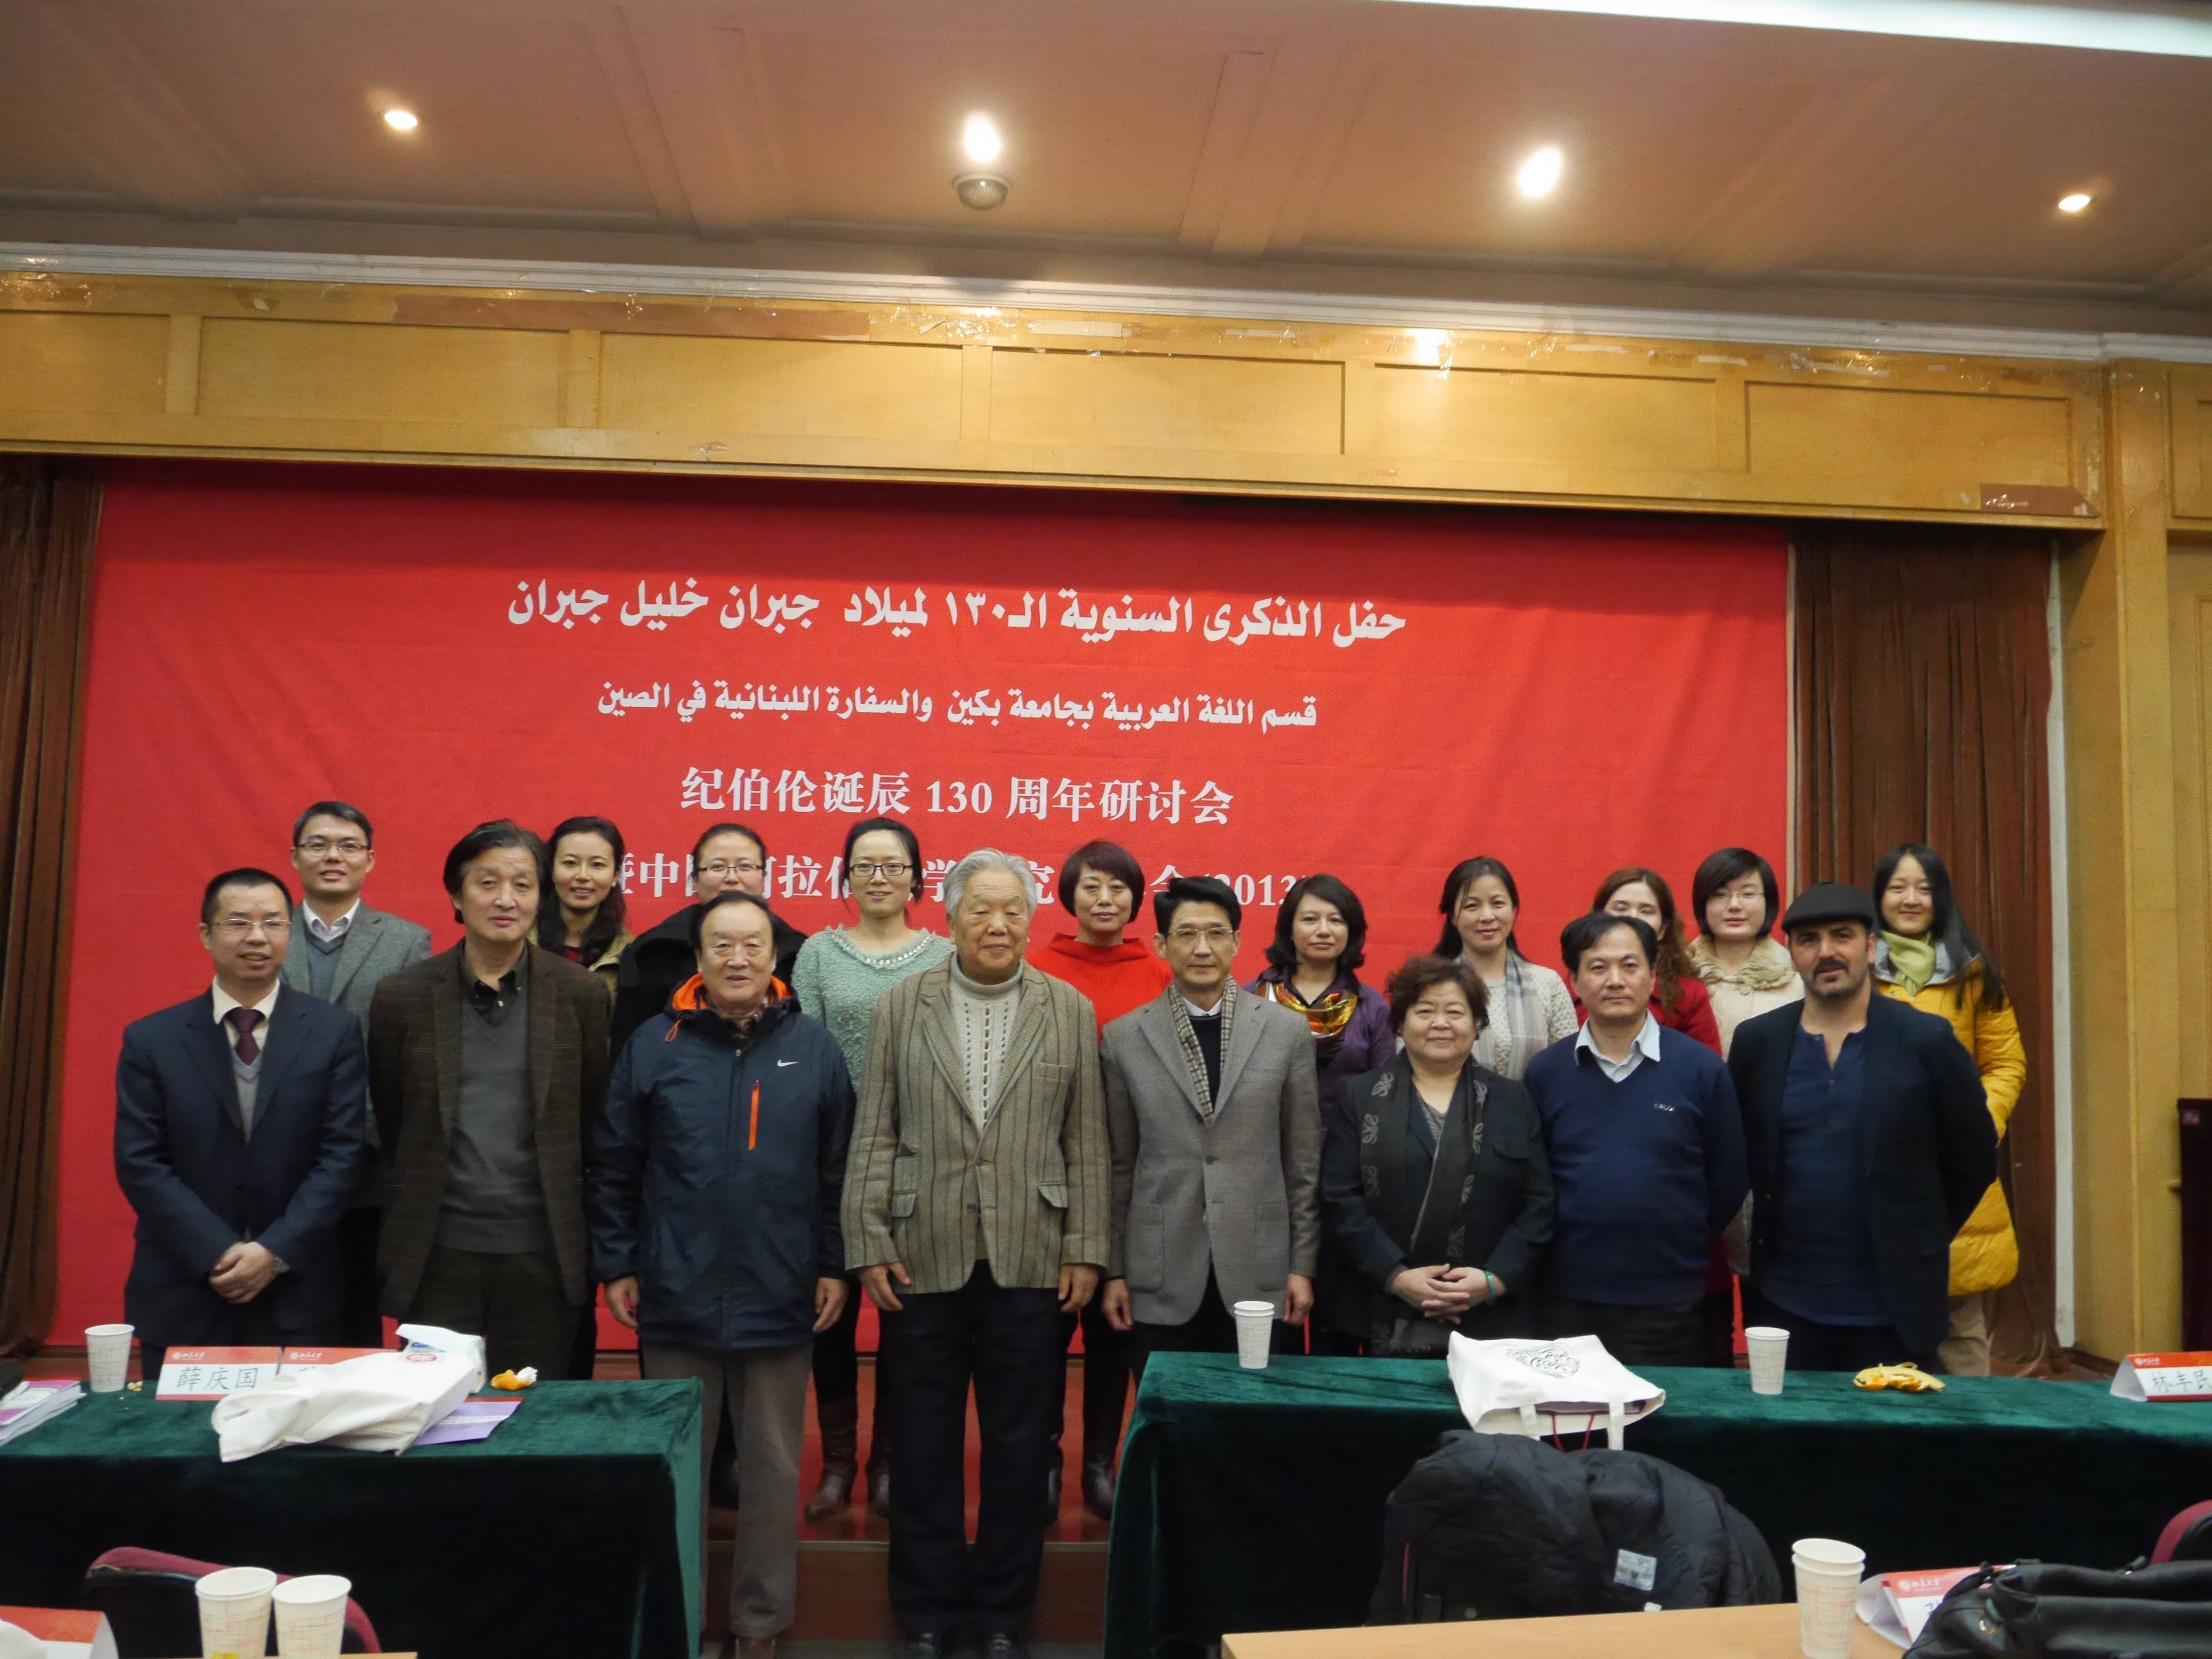 Glen Kalem (right of image) in attendance - Middle East Literature Conference - Peking University - Nov 24th 2013